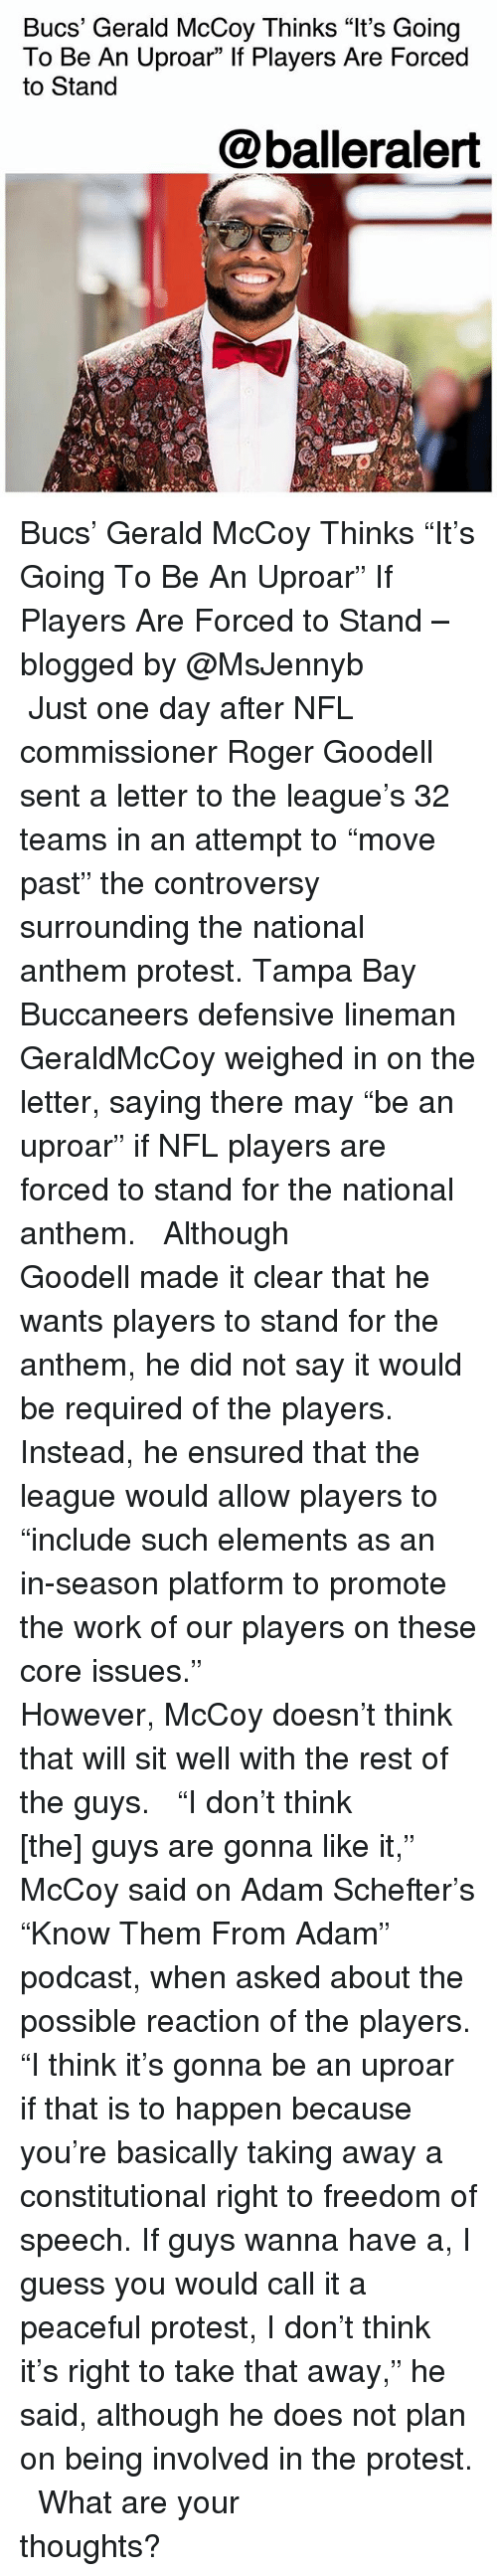 "Memes, Nfl, and Protest: Bucs' Gerald McCoy Thinks ""It's Going  To Be An Uproar"" If Players Are Forced  to Stand  @balleralert Bucs' Gerald McCoy Thinks ""It's Going To Be An Uproar"" If Players Are Forced to Stand – blogged by @MsJennyb ⠀⠀⠀⠀⠀⠀⠀ ⠀⠀⠀⠀⠀⠀⠀ Just one day after NFL commissioner Roger Goodell sent a letter to the league's 32 teams in an attempt to ""move past"" the controversy surrounding the national anthem protest. Tampa Bay Buccaneers defensive lineman GeraldMcCoy weighed in on the letter, saying there may ""be an uproar"" if NFL players are forced to stand for the national anthem. ⠀⠀⠀⠀⠀⠀⠀ ⠀⠀⠀⠀⠀⠀⠀ Although Goodell made it clear that he wants players to stand for the anthem, he did not say it would be required of the players. Instead, he ensured that the league would allow players to ""include such elements as an in-season platform to promote the work of our players on these core issues."" ⠀⠀⠀⠀⠀⠀⠀ ⠀⠀⠀⠀⠀⠀⠀ However, McCoy doesn't think that will sit well with the rest of the guys. ⠀⠀⠀⠀⠀⠀⠀ ⠀⠀⠀⠀⠀⠀⠀ ""I don't think [the] guys are gonna like it,"" McCoy said on Adam Schefter's ""Know Them From Adam"" podcast, when asked about the possible reaction of the players. ""I think it's gonna be an uproar if that is to happen because you're basically taking away a constitutional right to freedom of speech. If guys wanna have a, I guess you would call it a peaceful protest, I don't think it's right to take that away,"" he said, although he does not plan on being involved in the protest. ⠀⠀⠀⠀⠀⠀⠀ ⠀⠀⠀⠀⠀⠀⠀ What are your thoughts?"